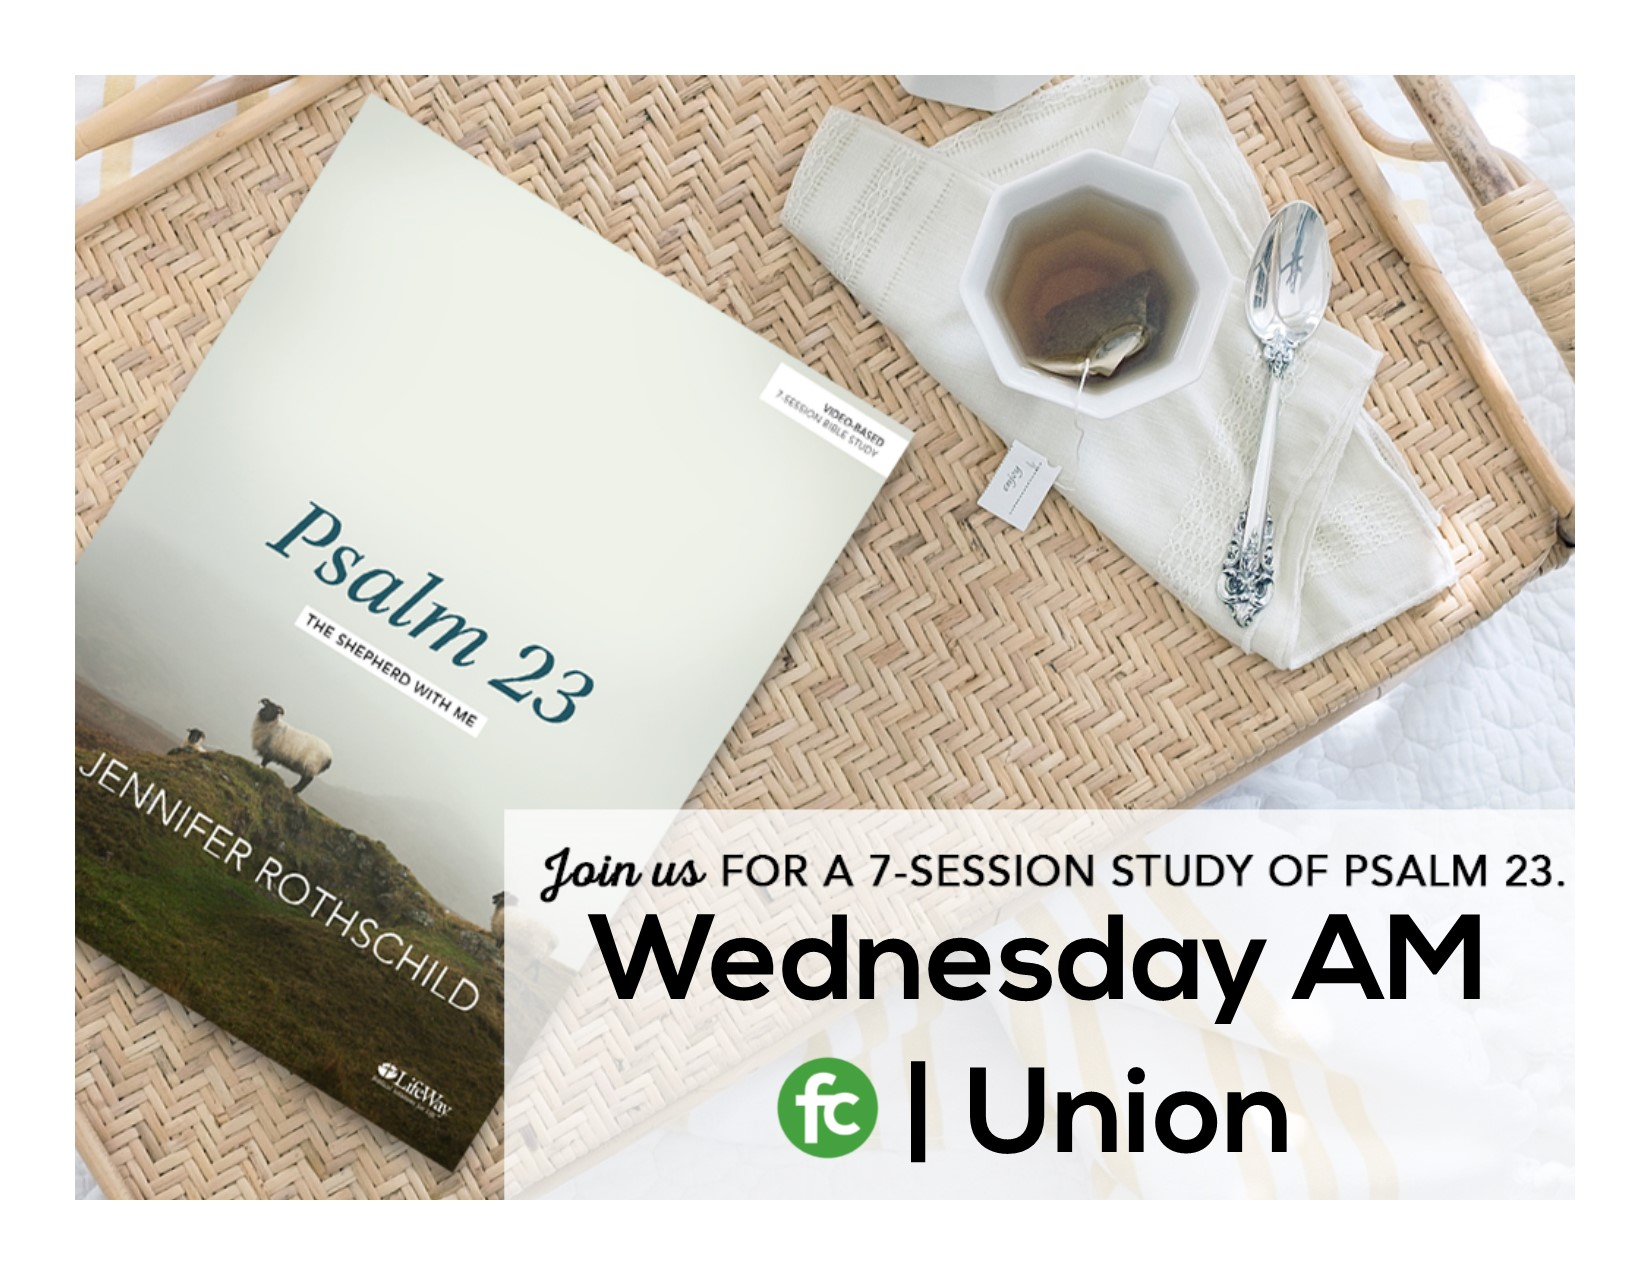 Union wed am psalm 23 promo